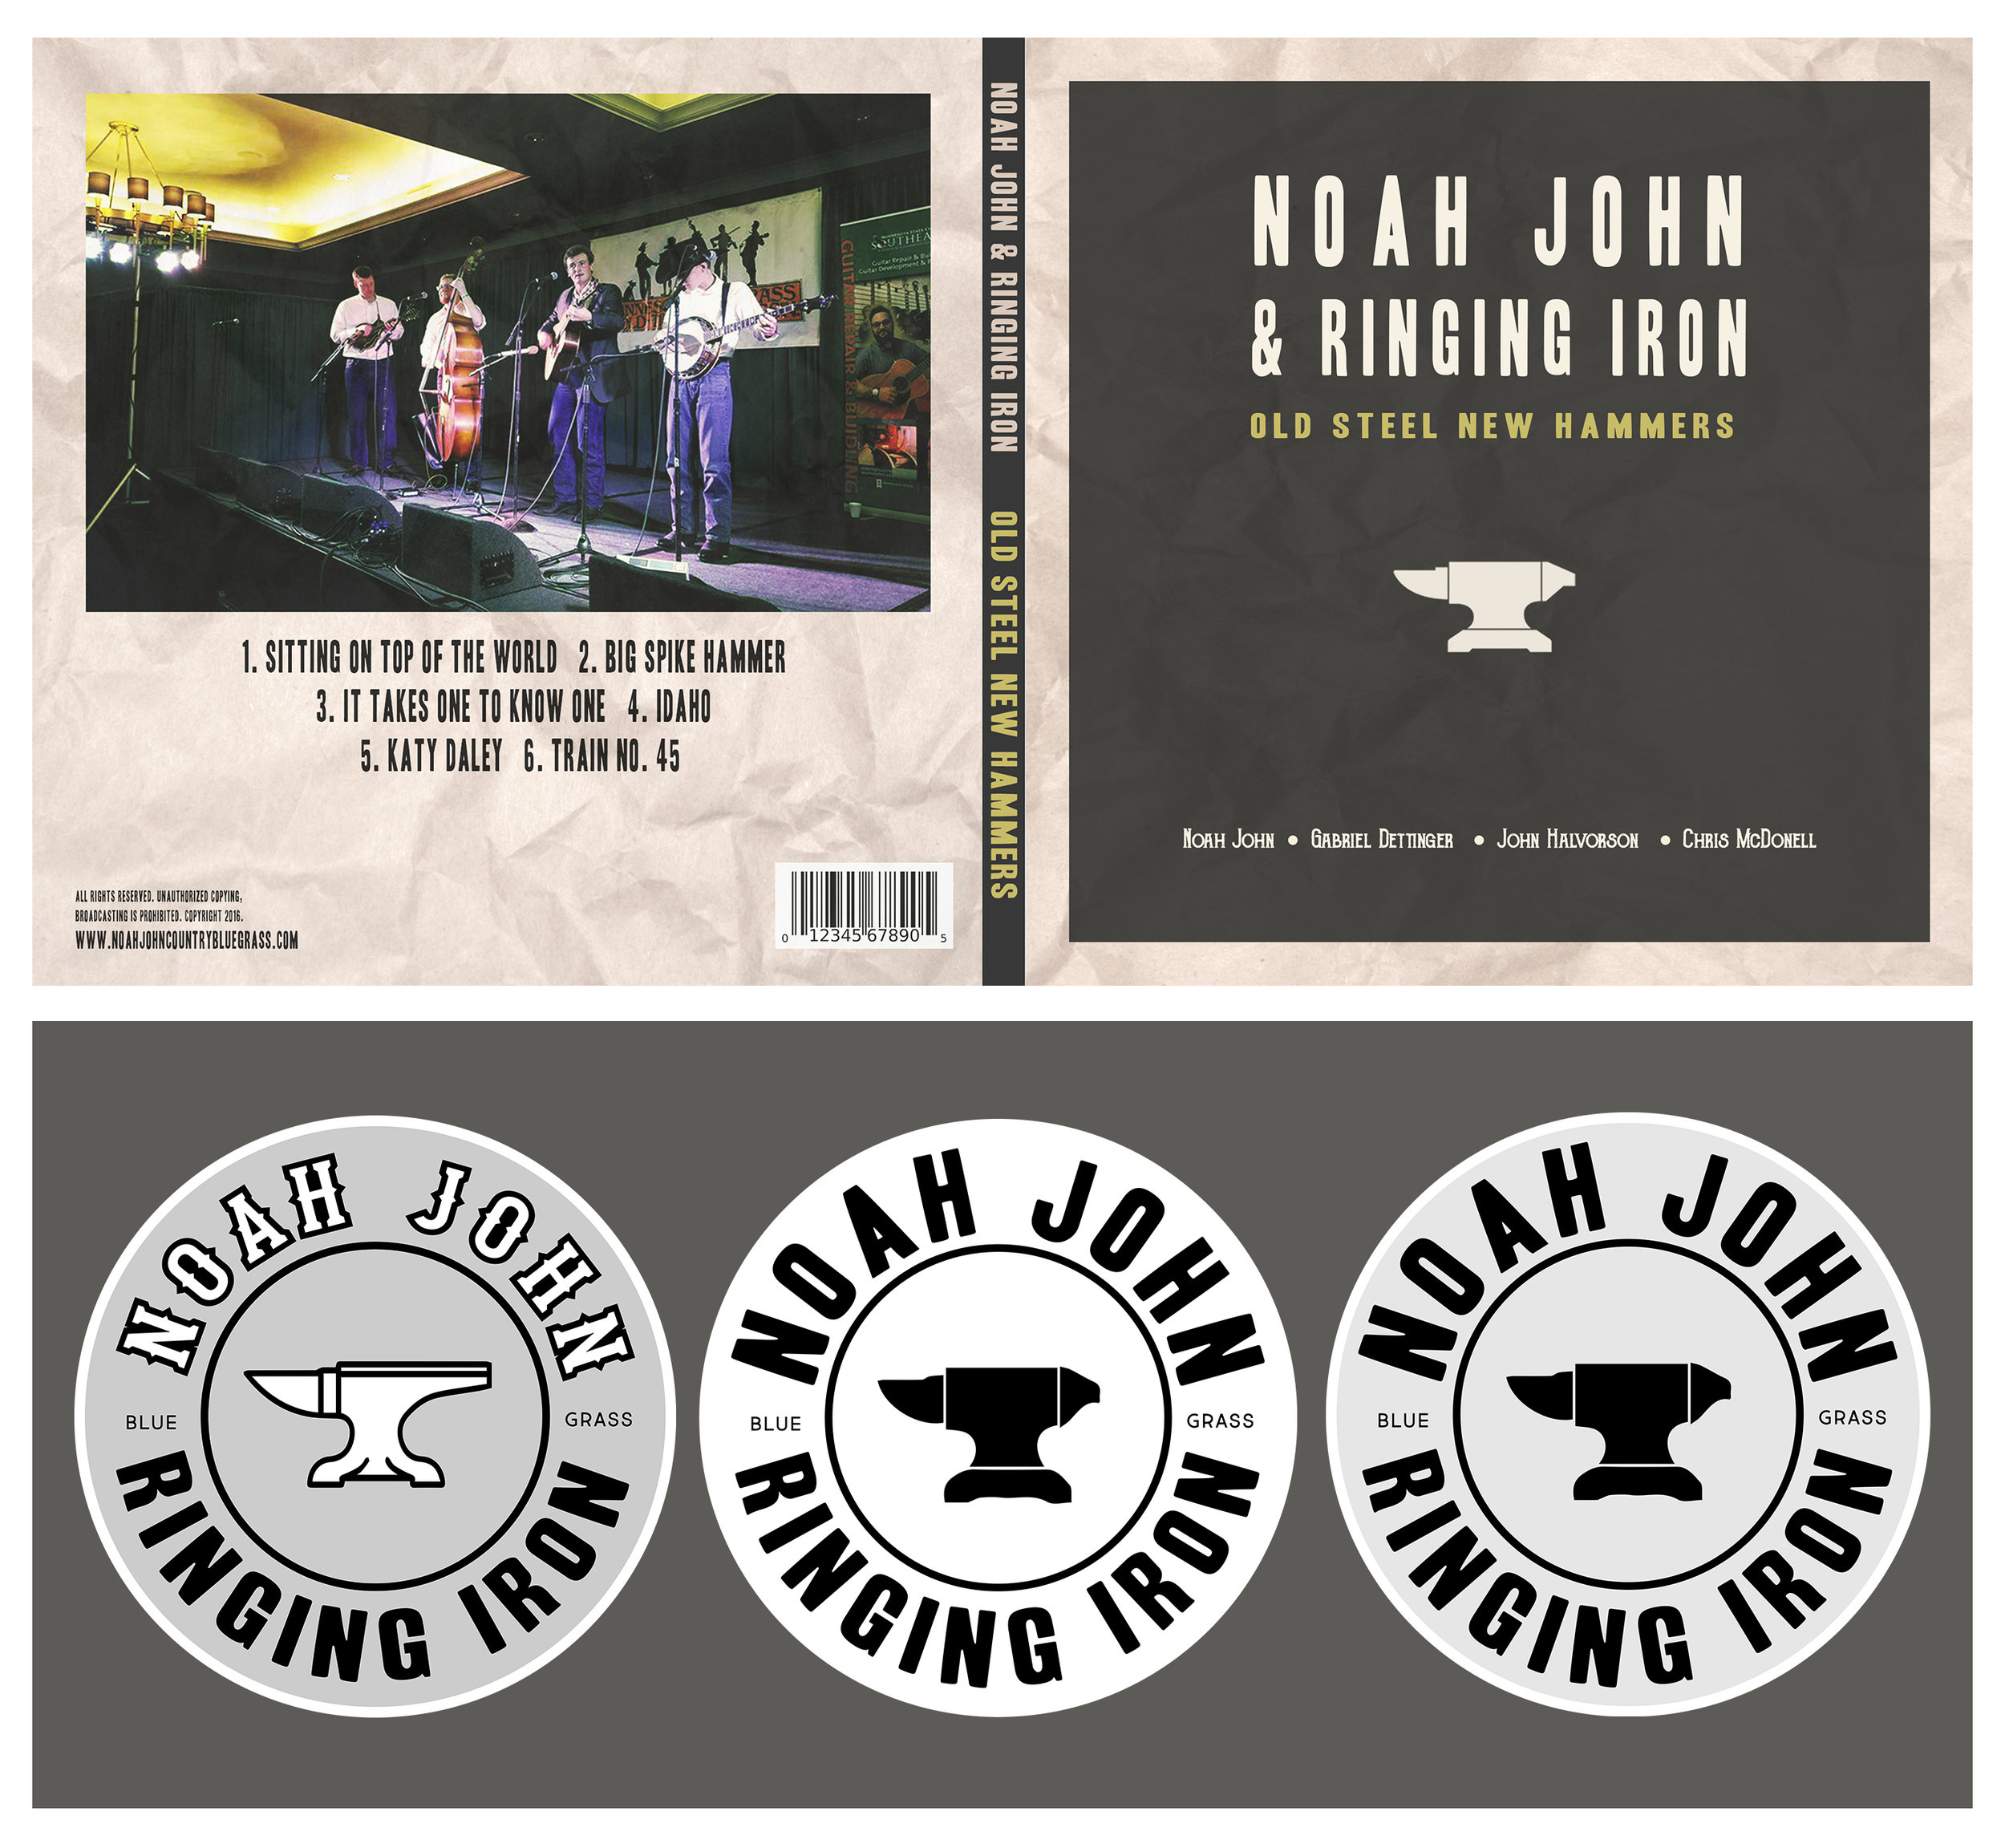 Noah John and Ringing Iron  - Album artwork design and stickers for a local Bluegrass band.